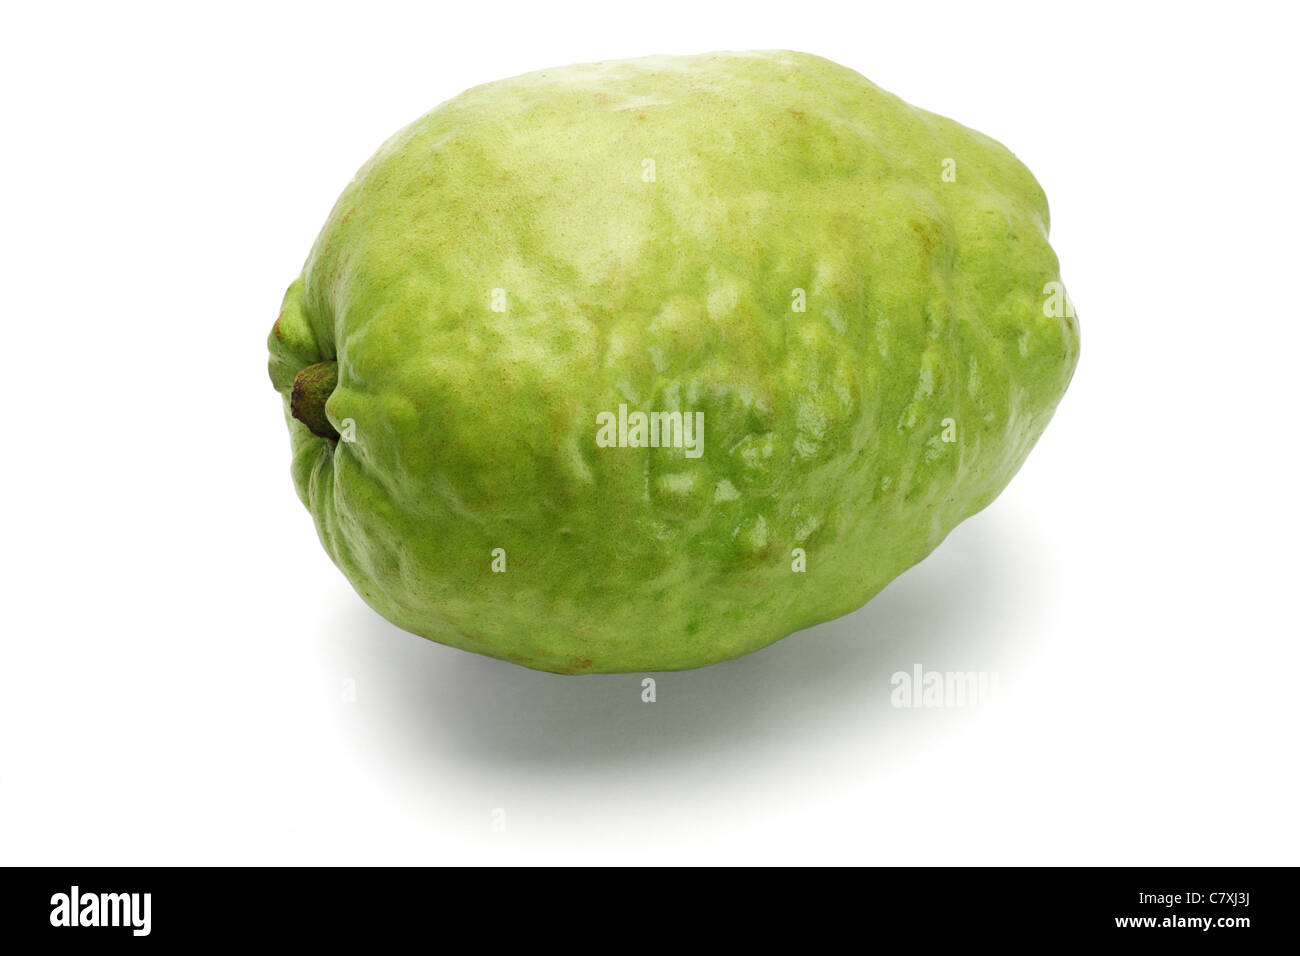 Seedless Guava Stock Photos & Seedless Guava Stock Images